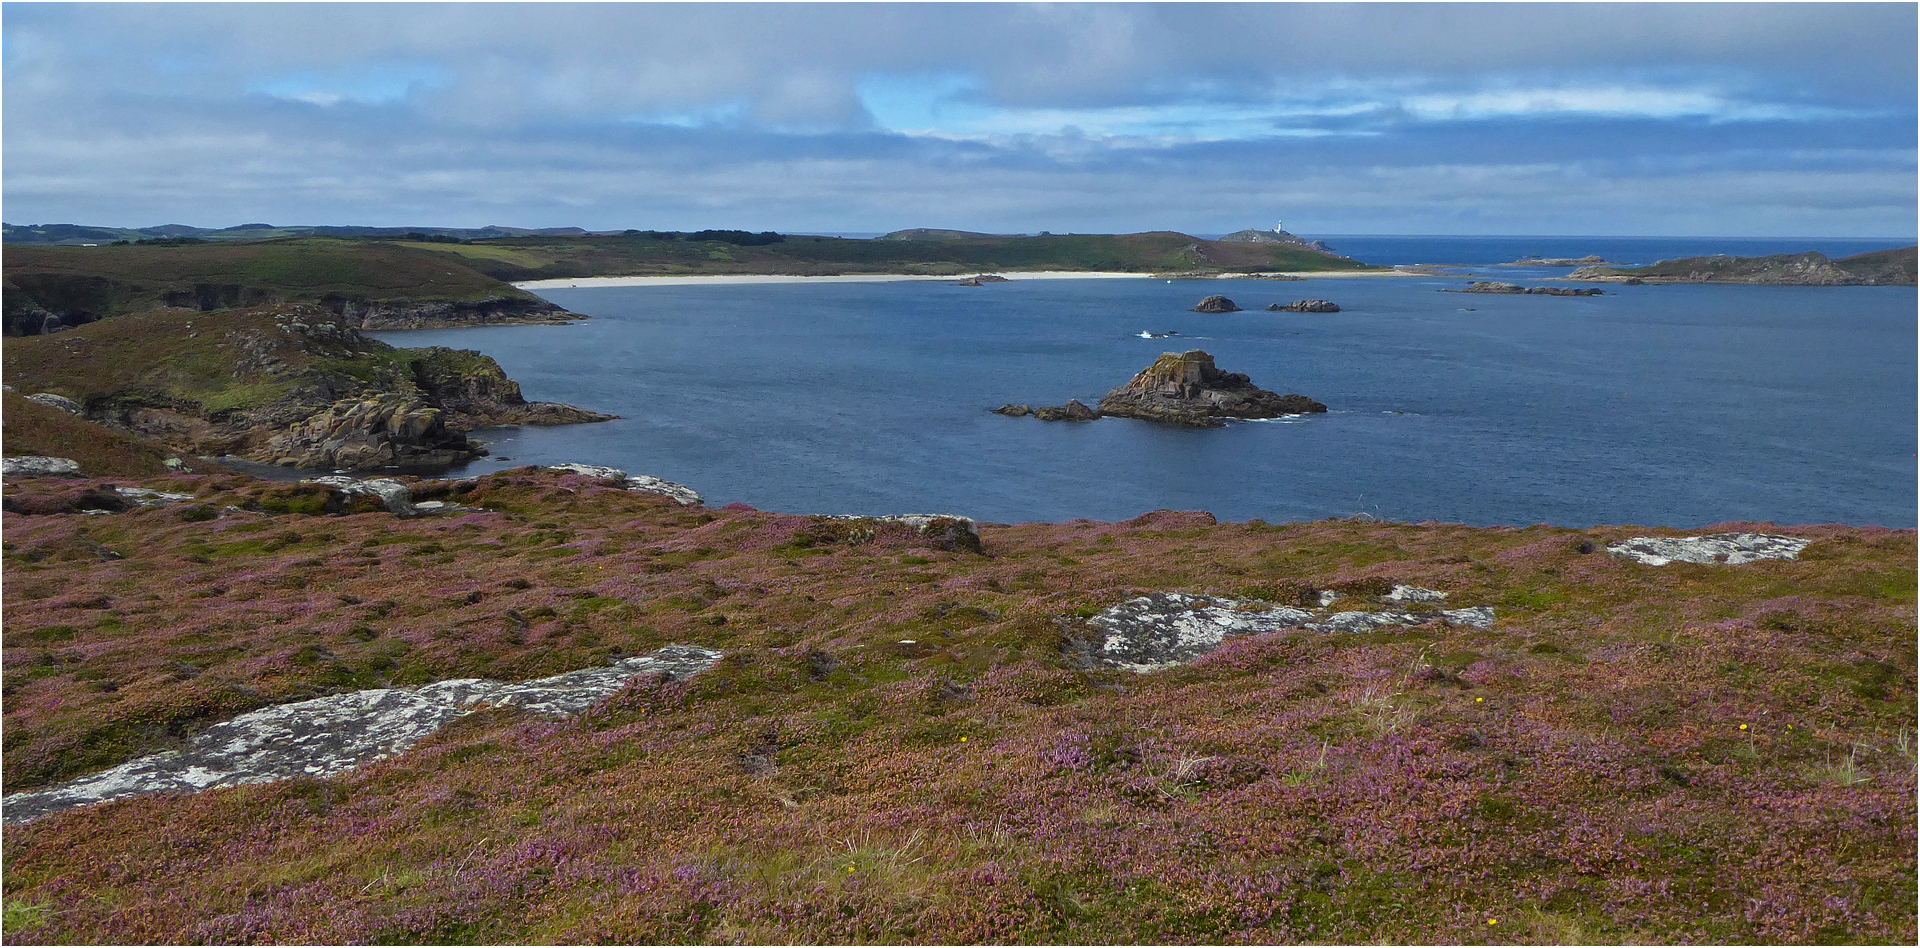 St Martin's, Isles of Scilly - Christine Wetton